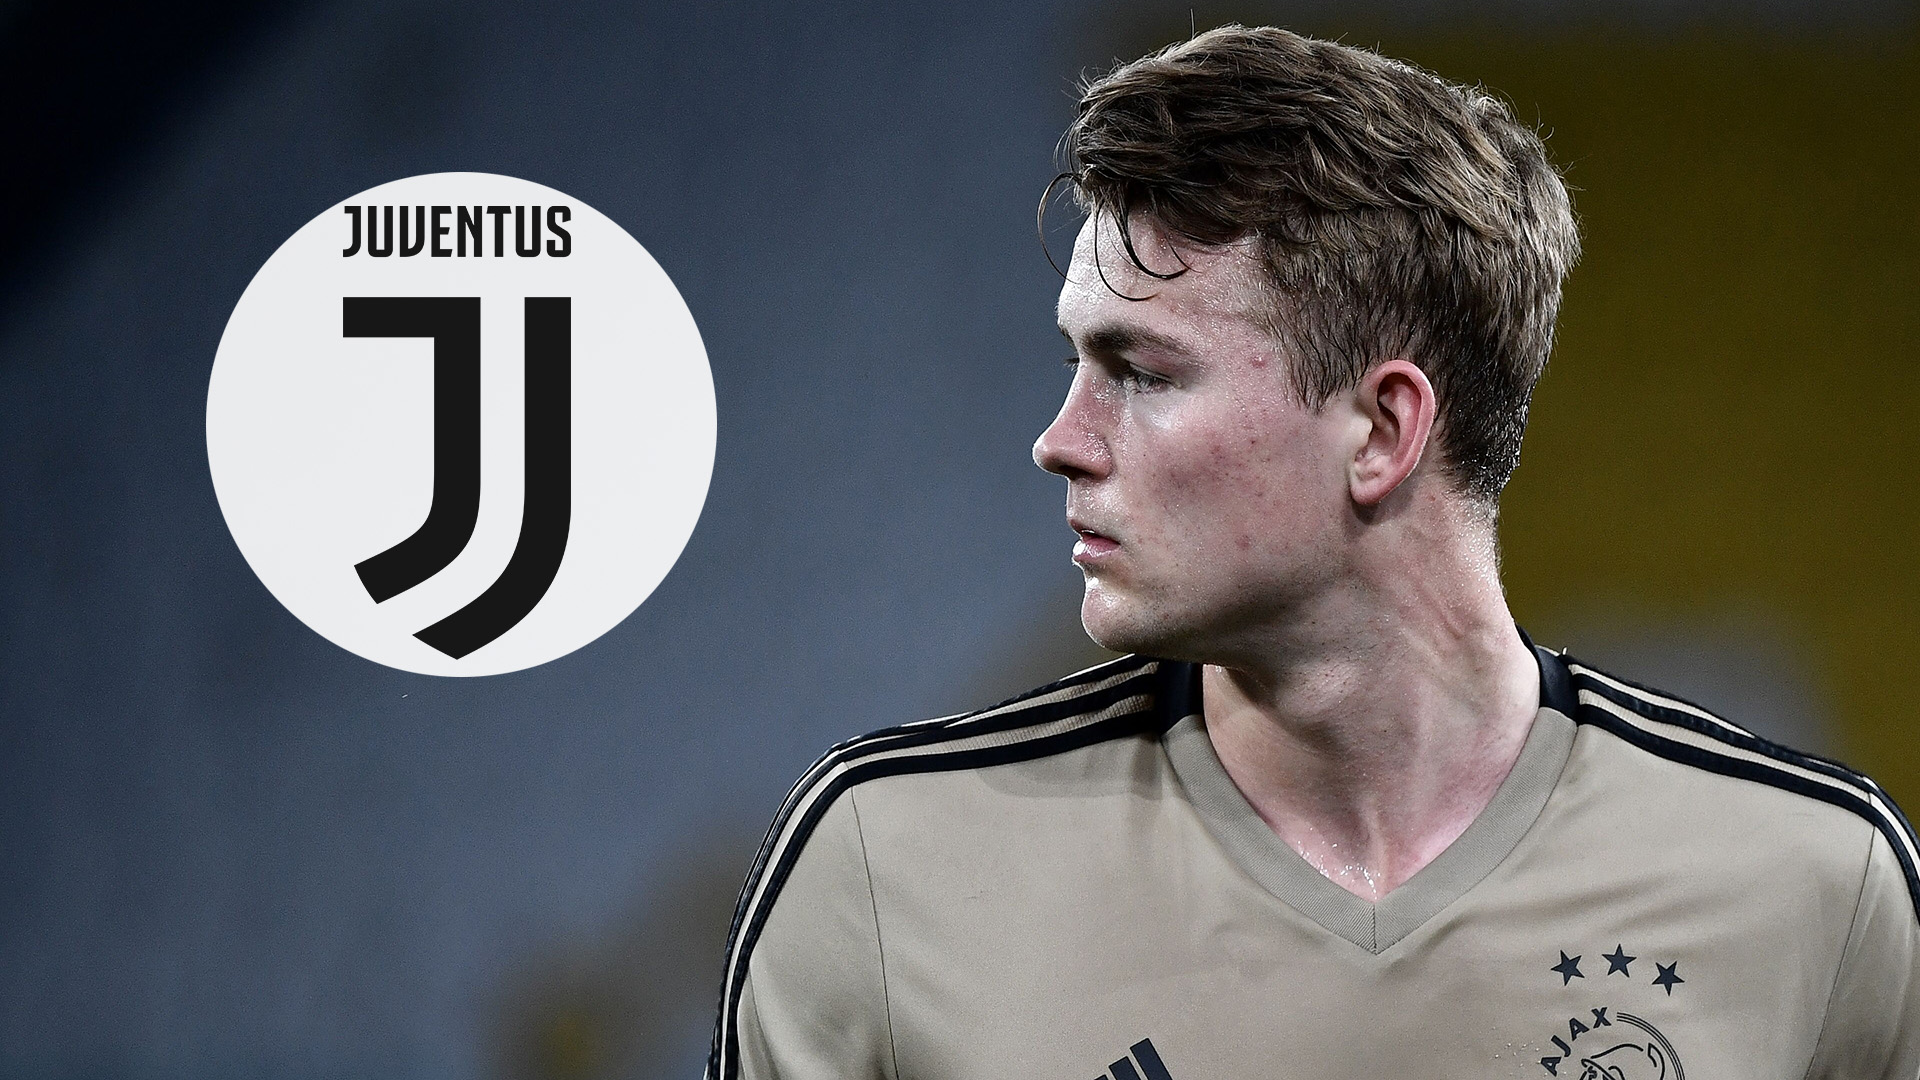 De Ligt reveals why he chose to sign for Juventus